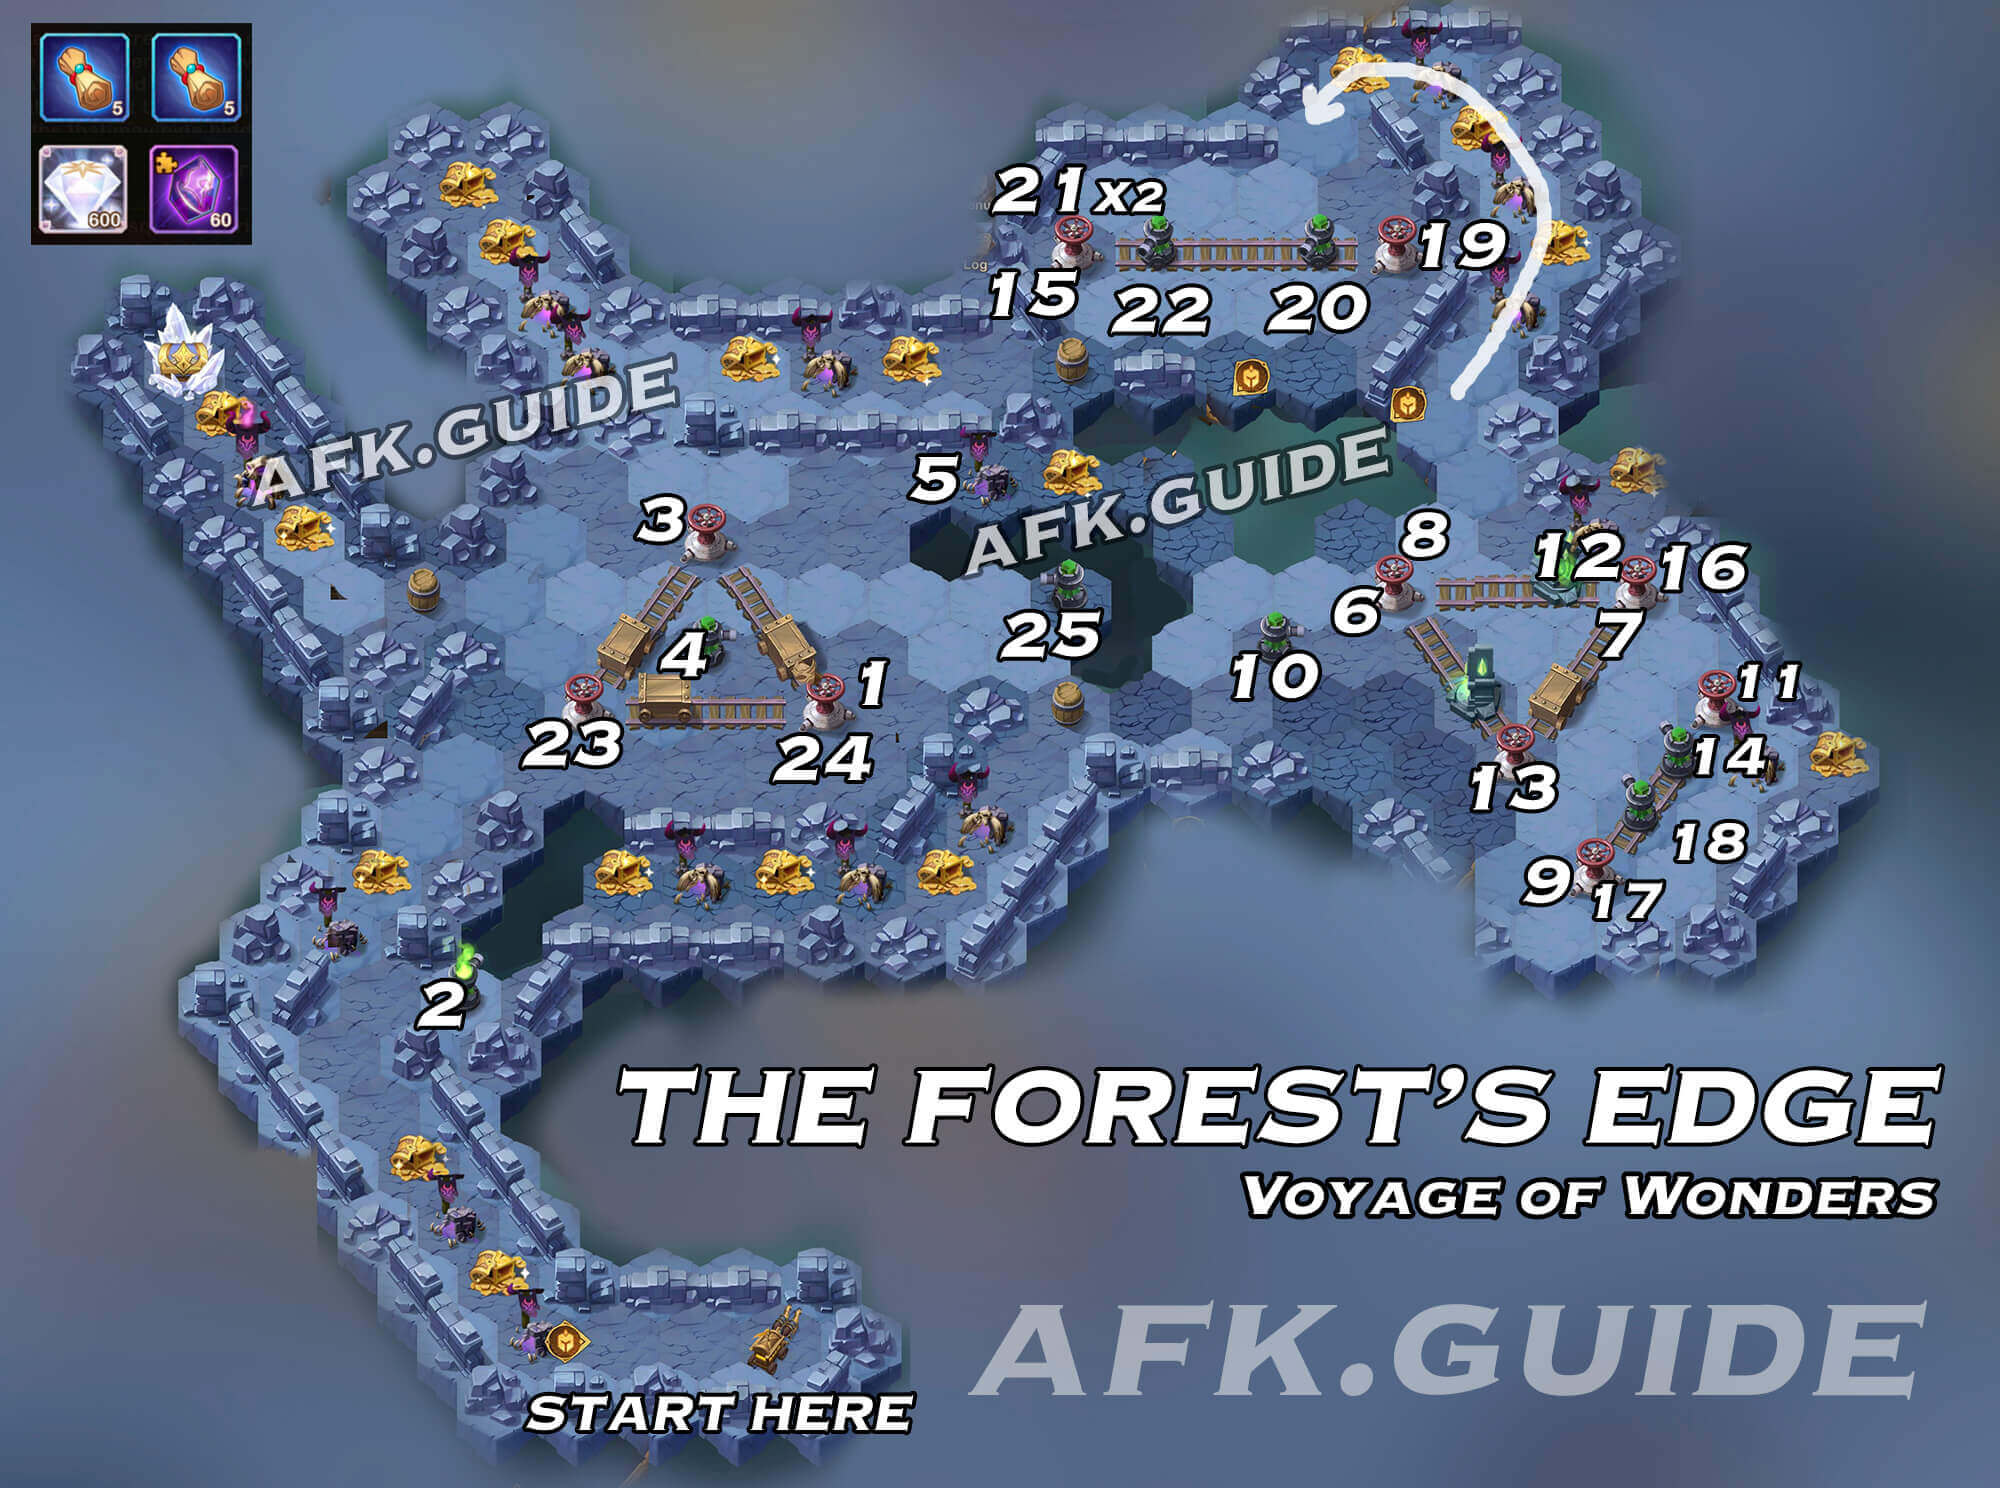 Voyage of Wonders Guide & Map: The Forest's Edge